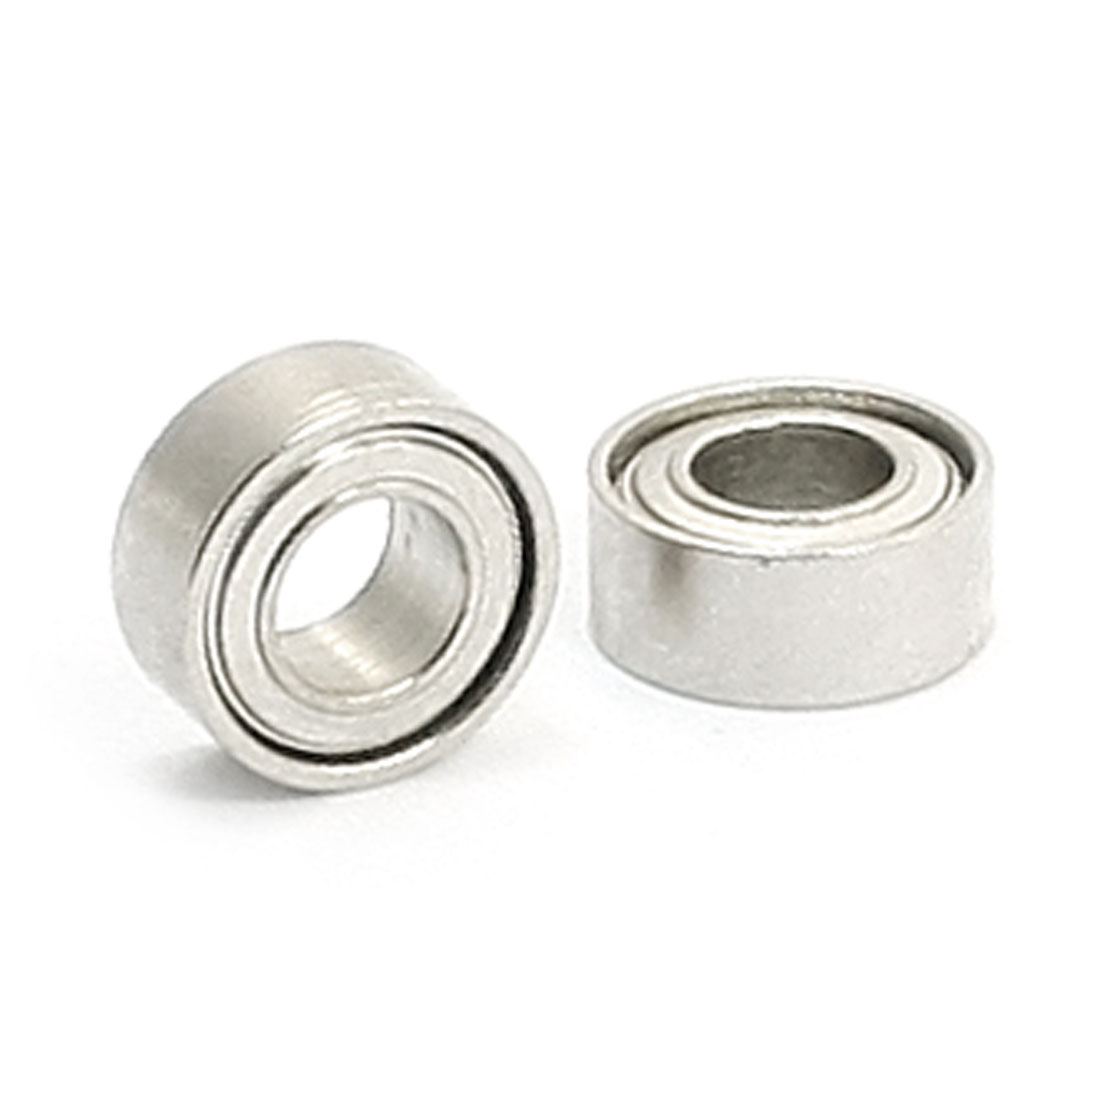 Single Row Shielded Deep Groove Ball Bearings 3mm x 6mm x 2.5mm 2pcs